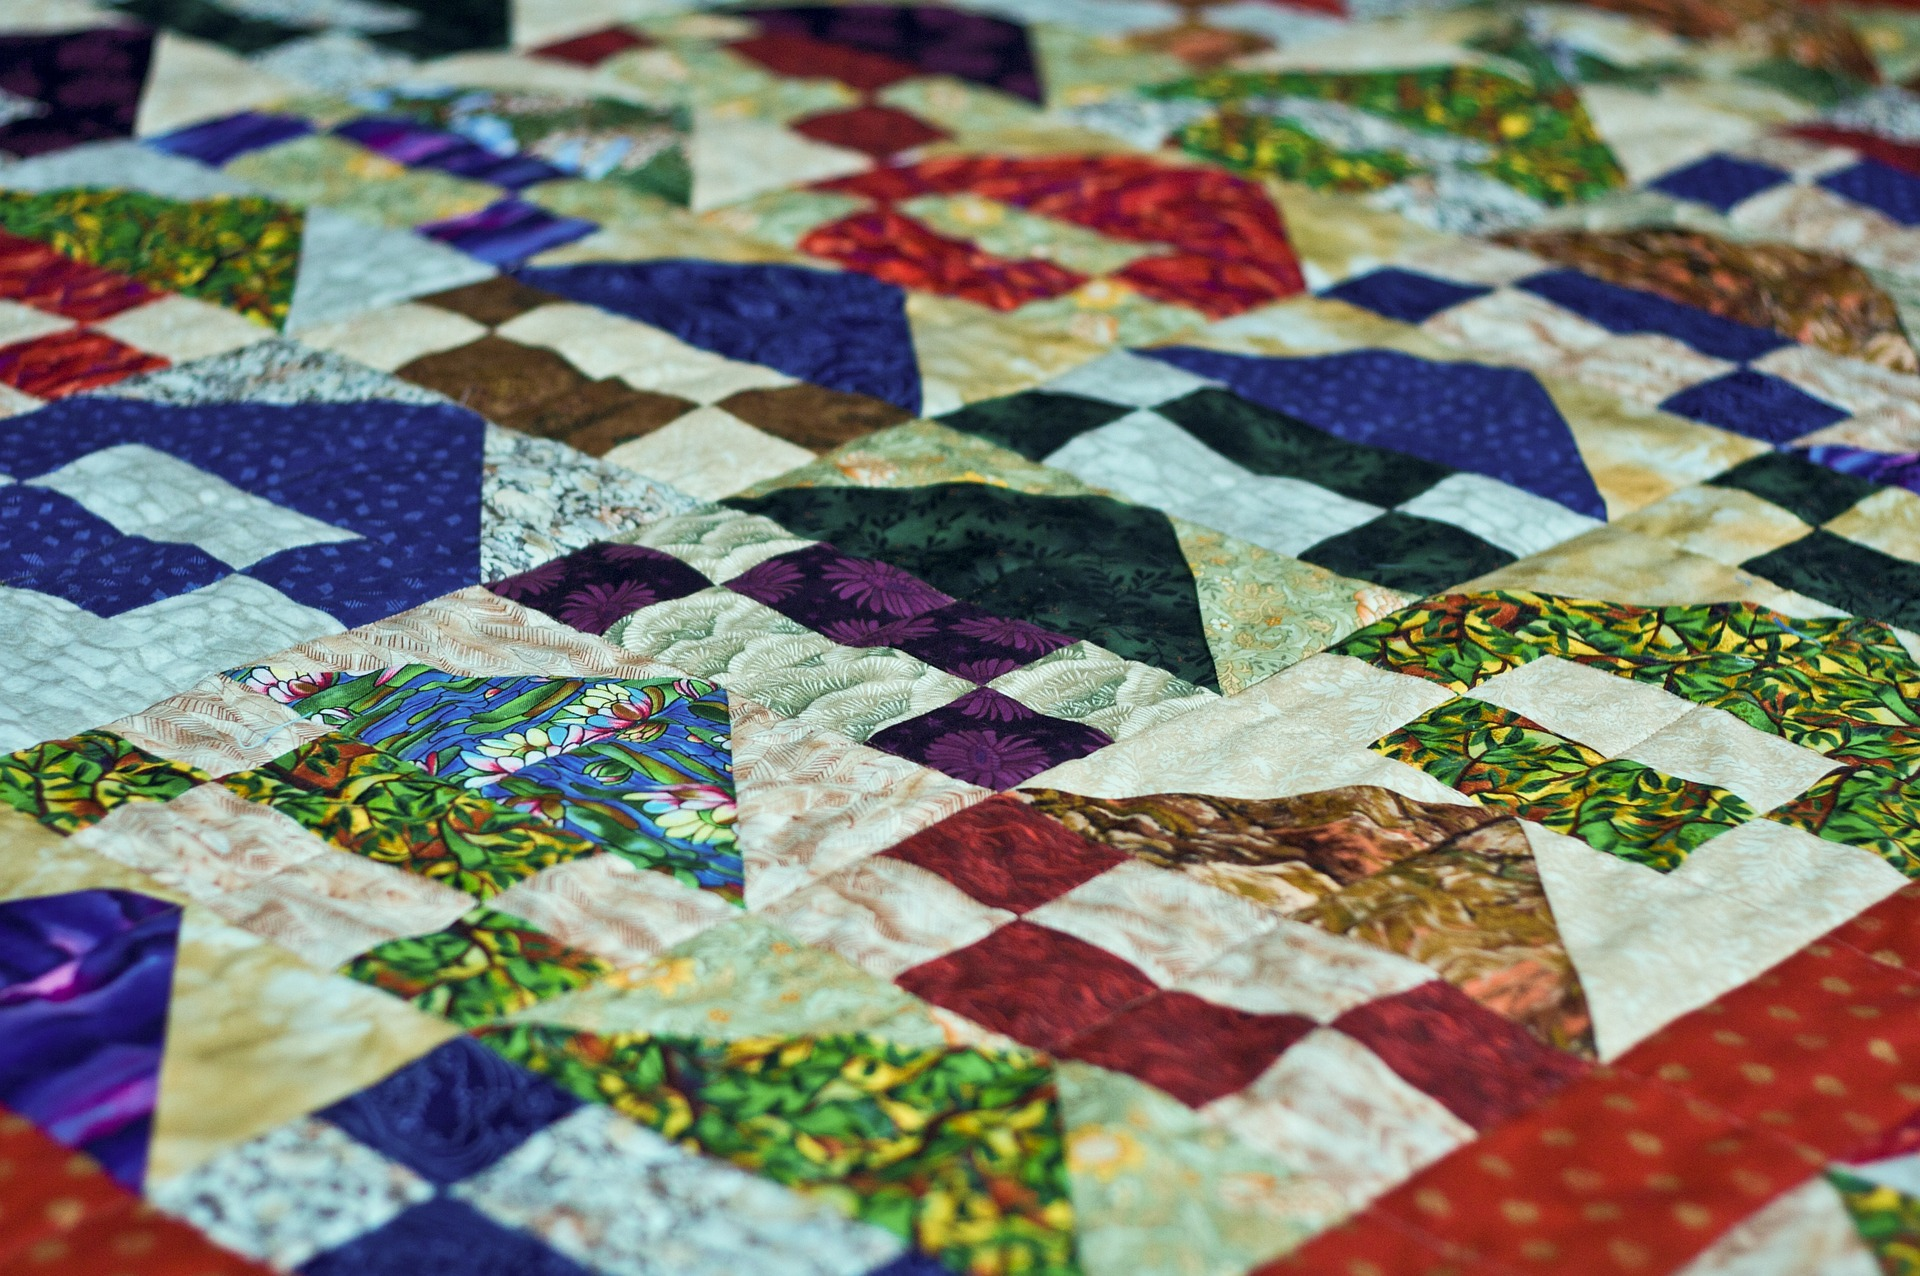 A colourful patchwork quilt